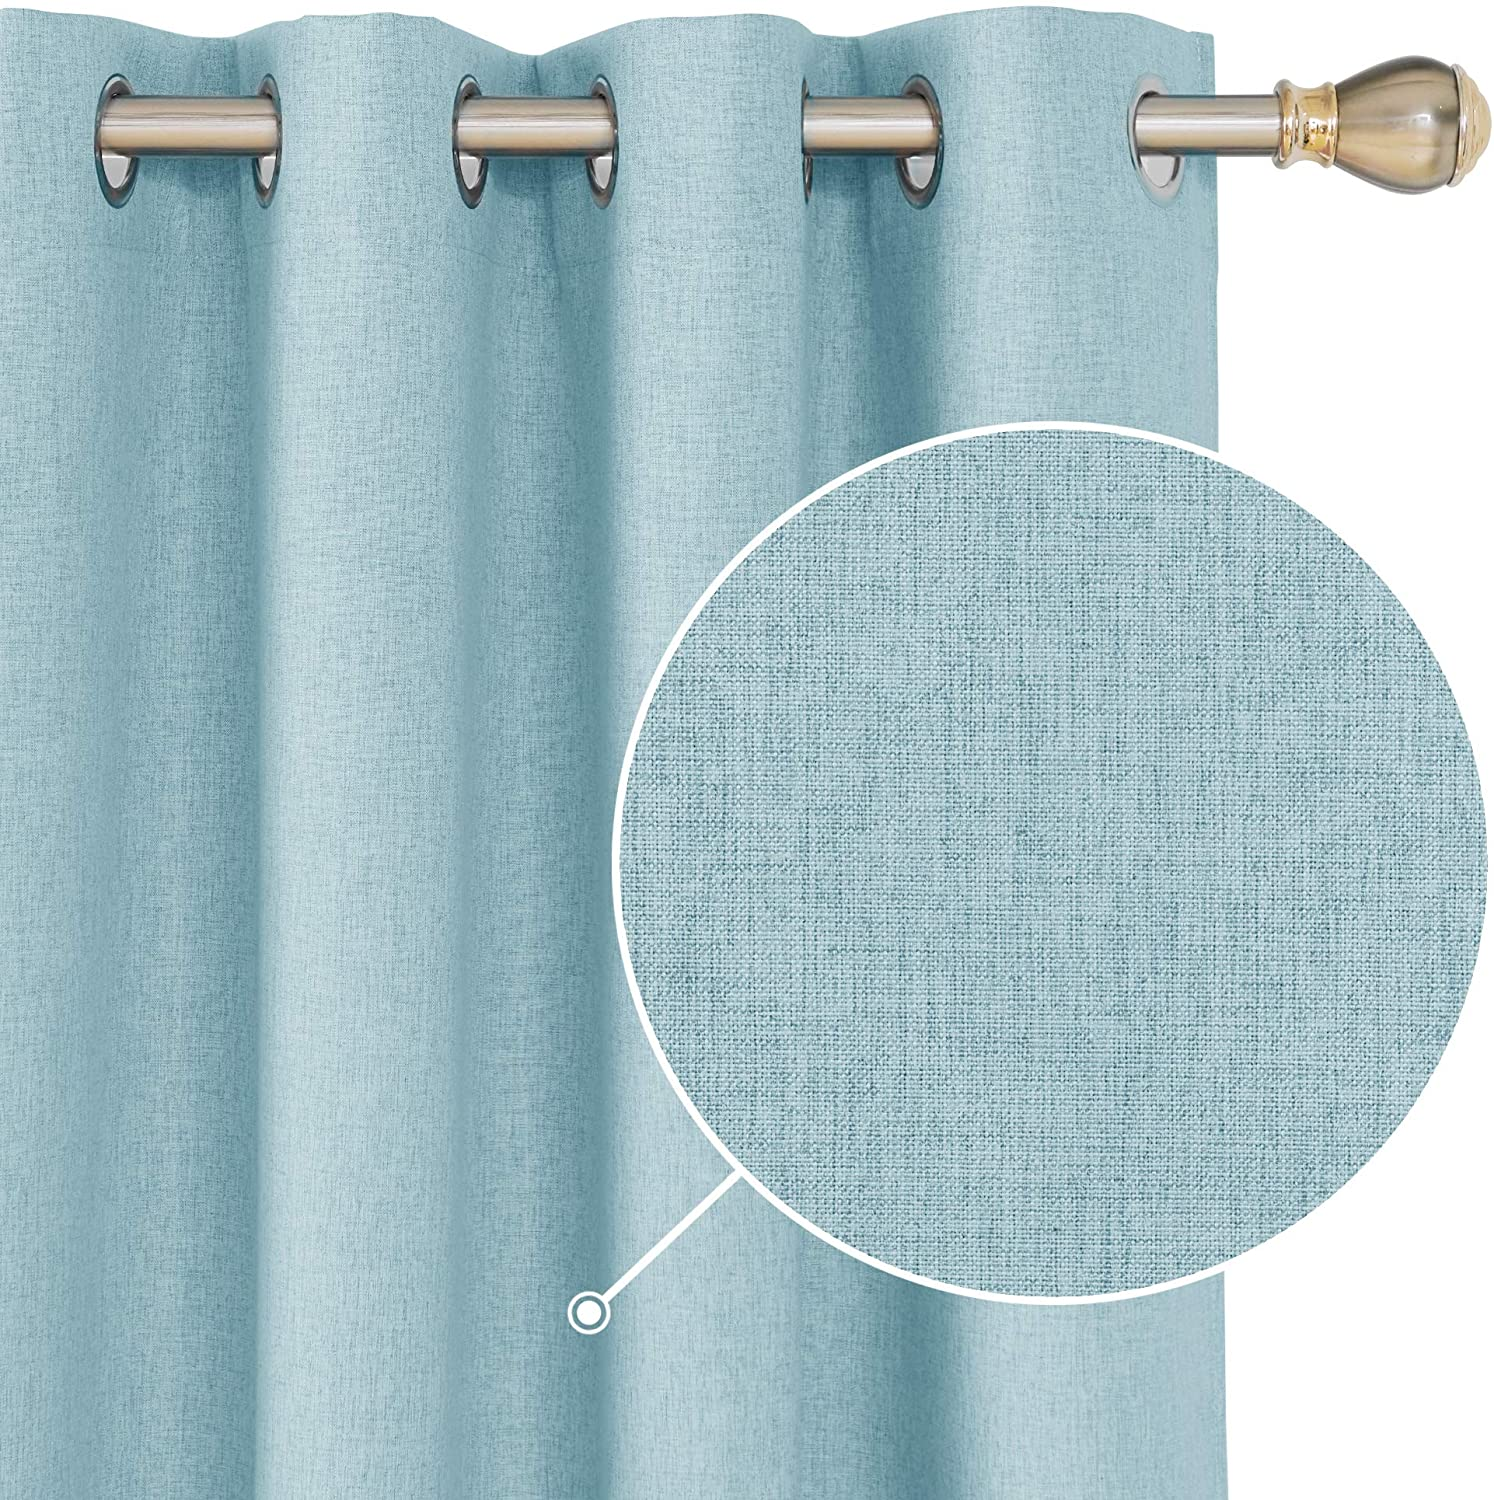 Deconovo Total Blackout Curtains Grommet Thermal Insulated Energy Saving Curtains Room Darkening Drapes for Nursery Room Turquoise 52x54 Inch Set of 2